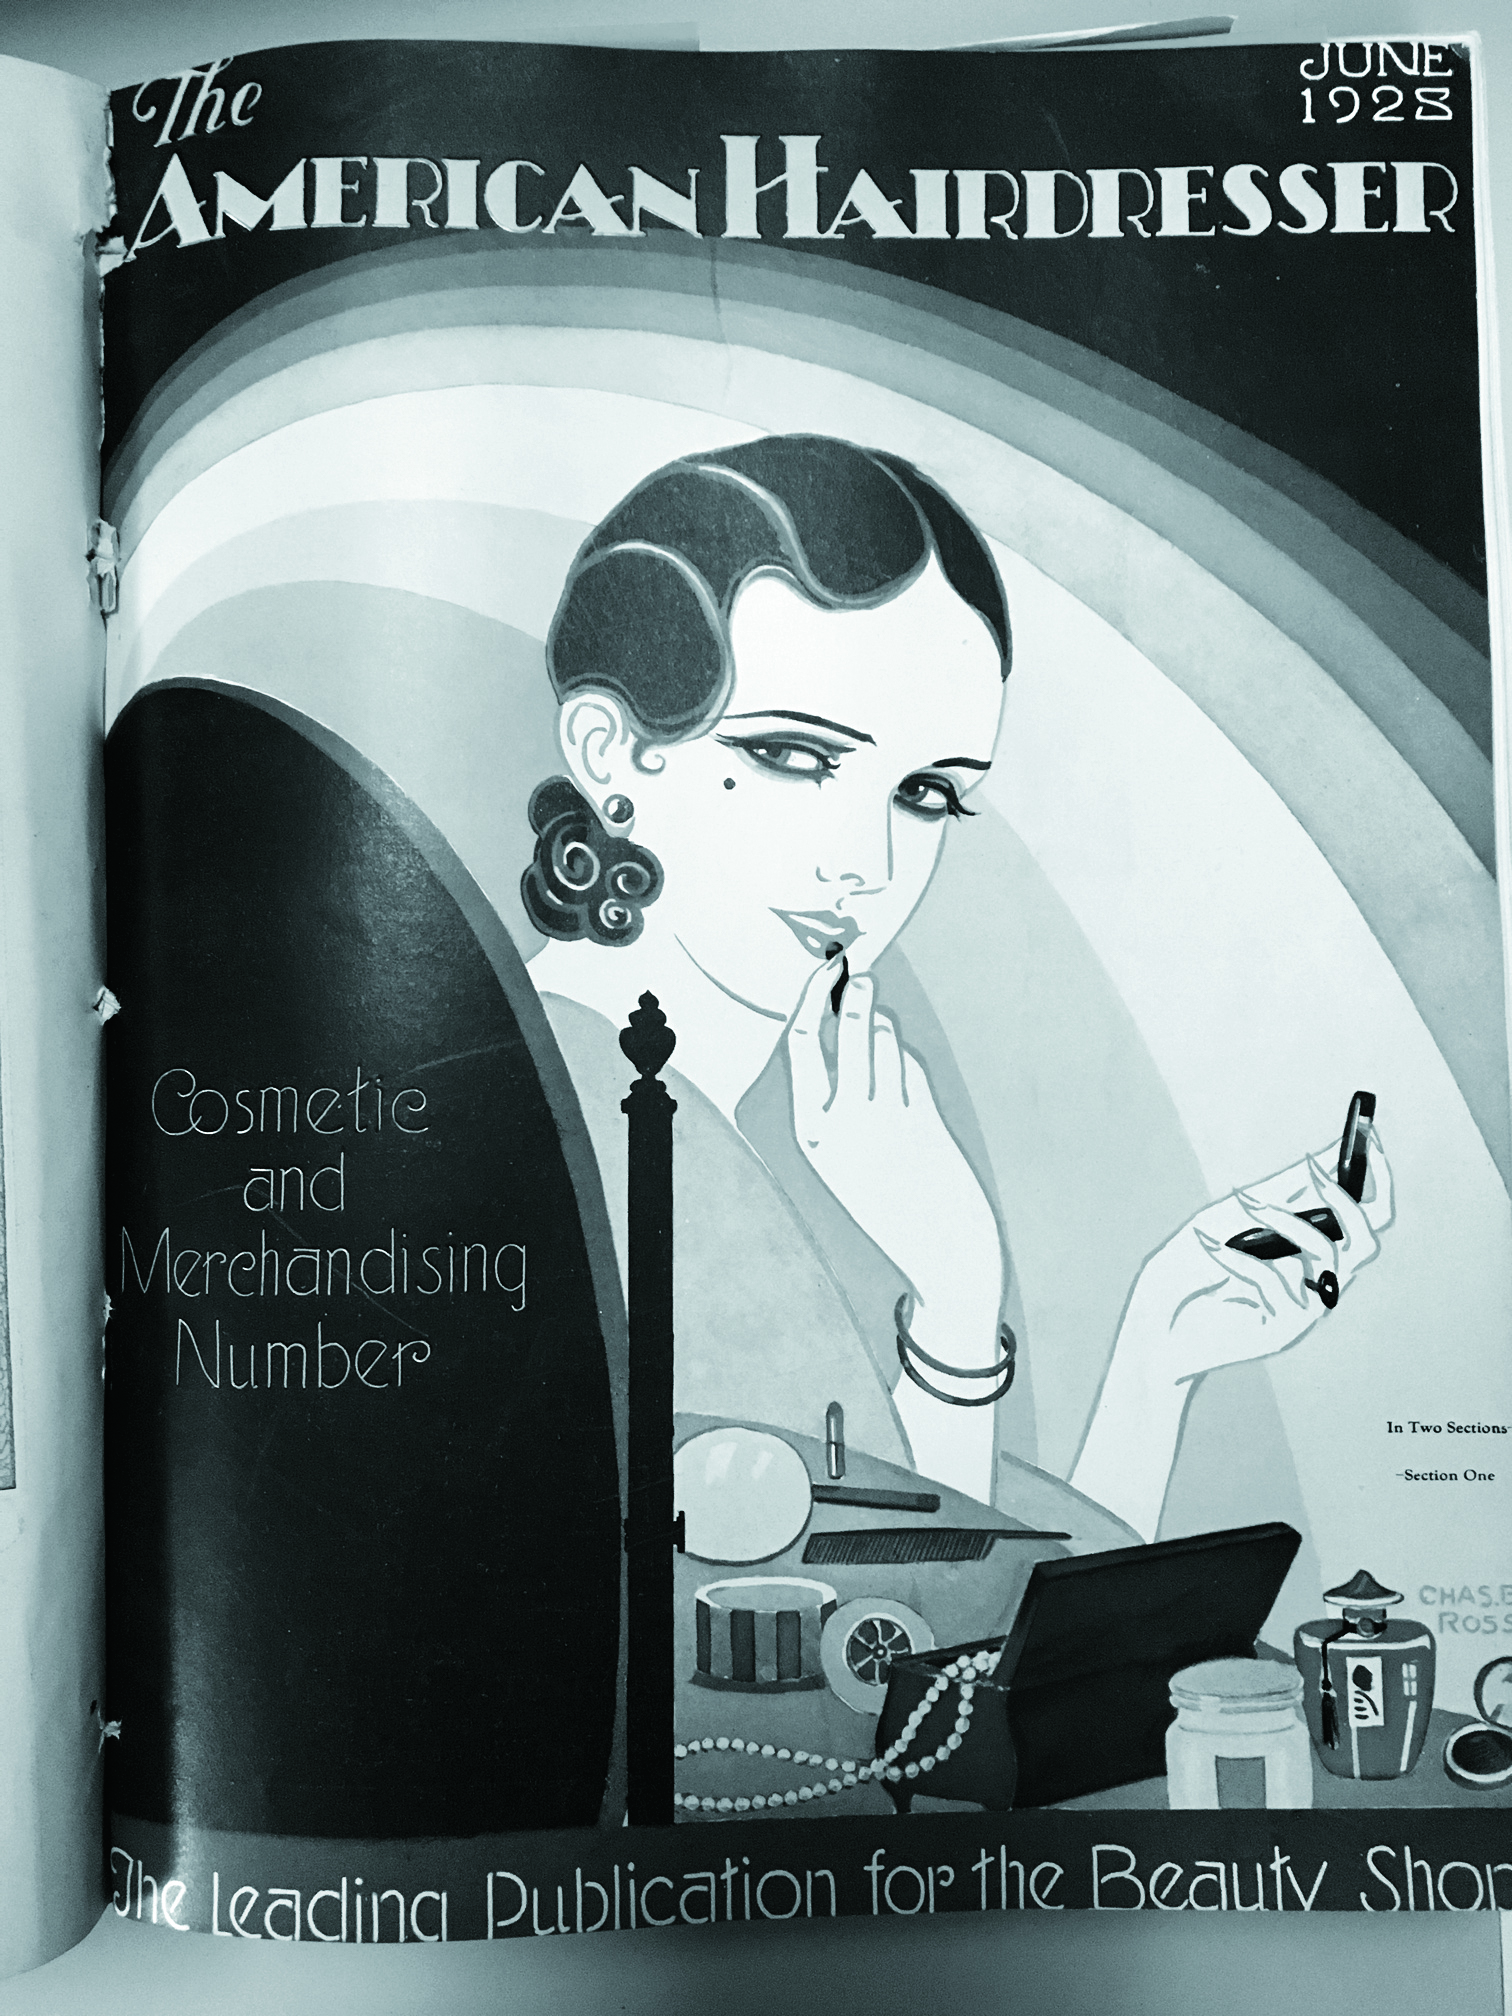 The cover of a cosmetics supplement from our June 1928 issue of The American Hairdresser.